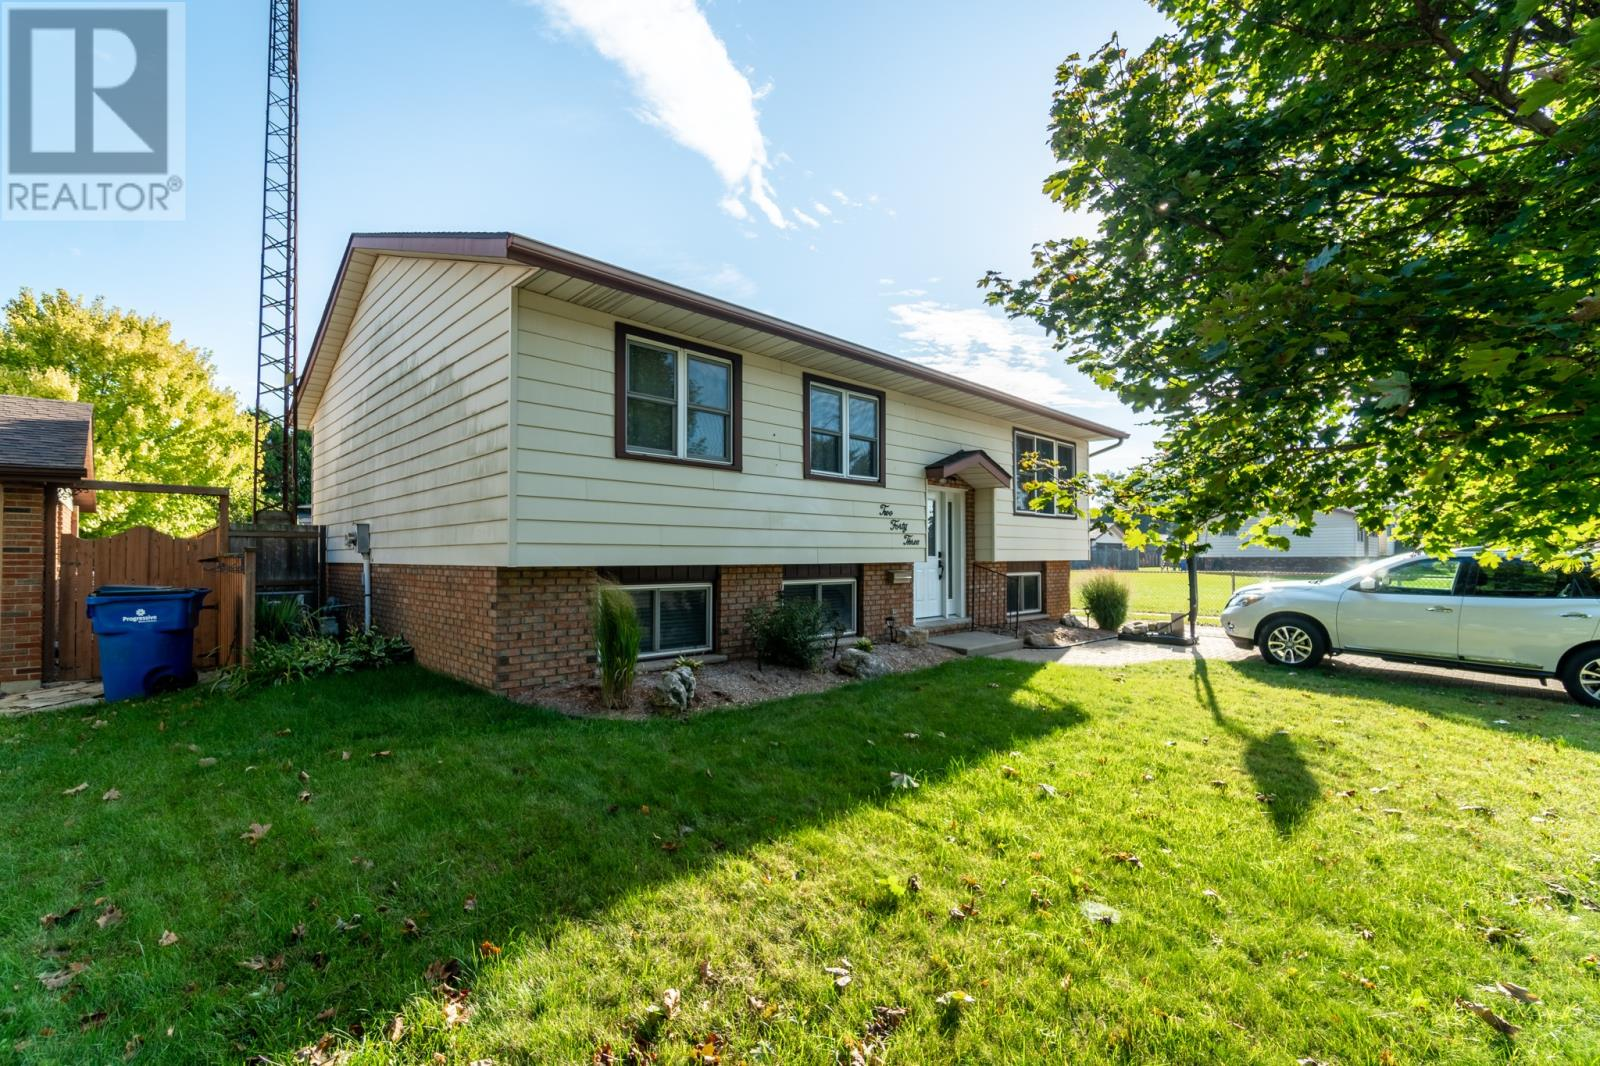 Removed: 243 Michener Road, Chatham, ON - Removed on 2019-11-19 05:57:11